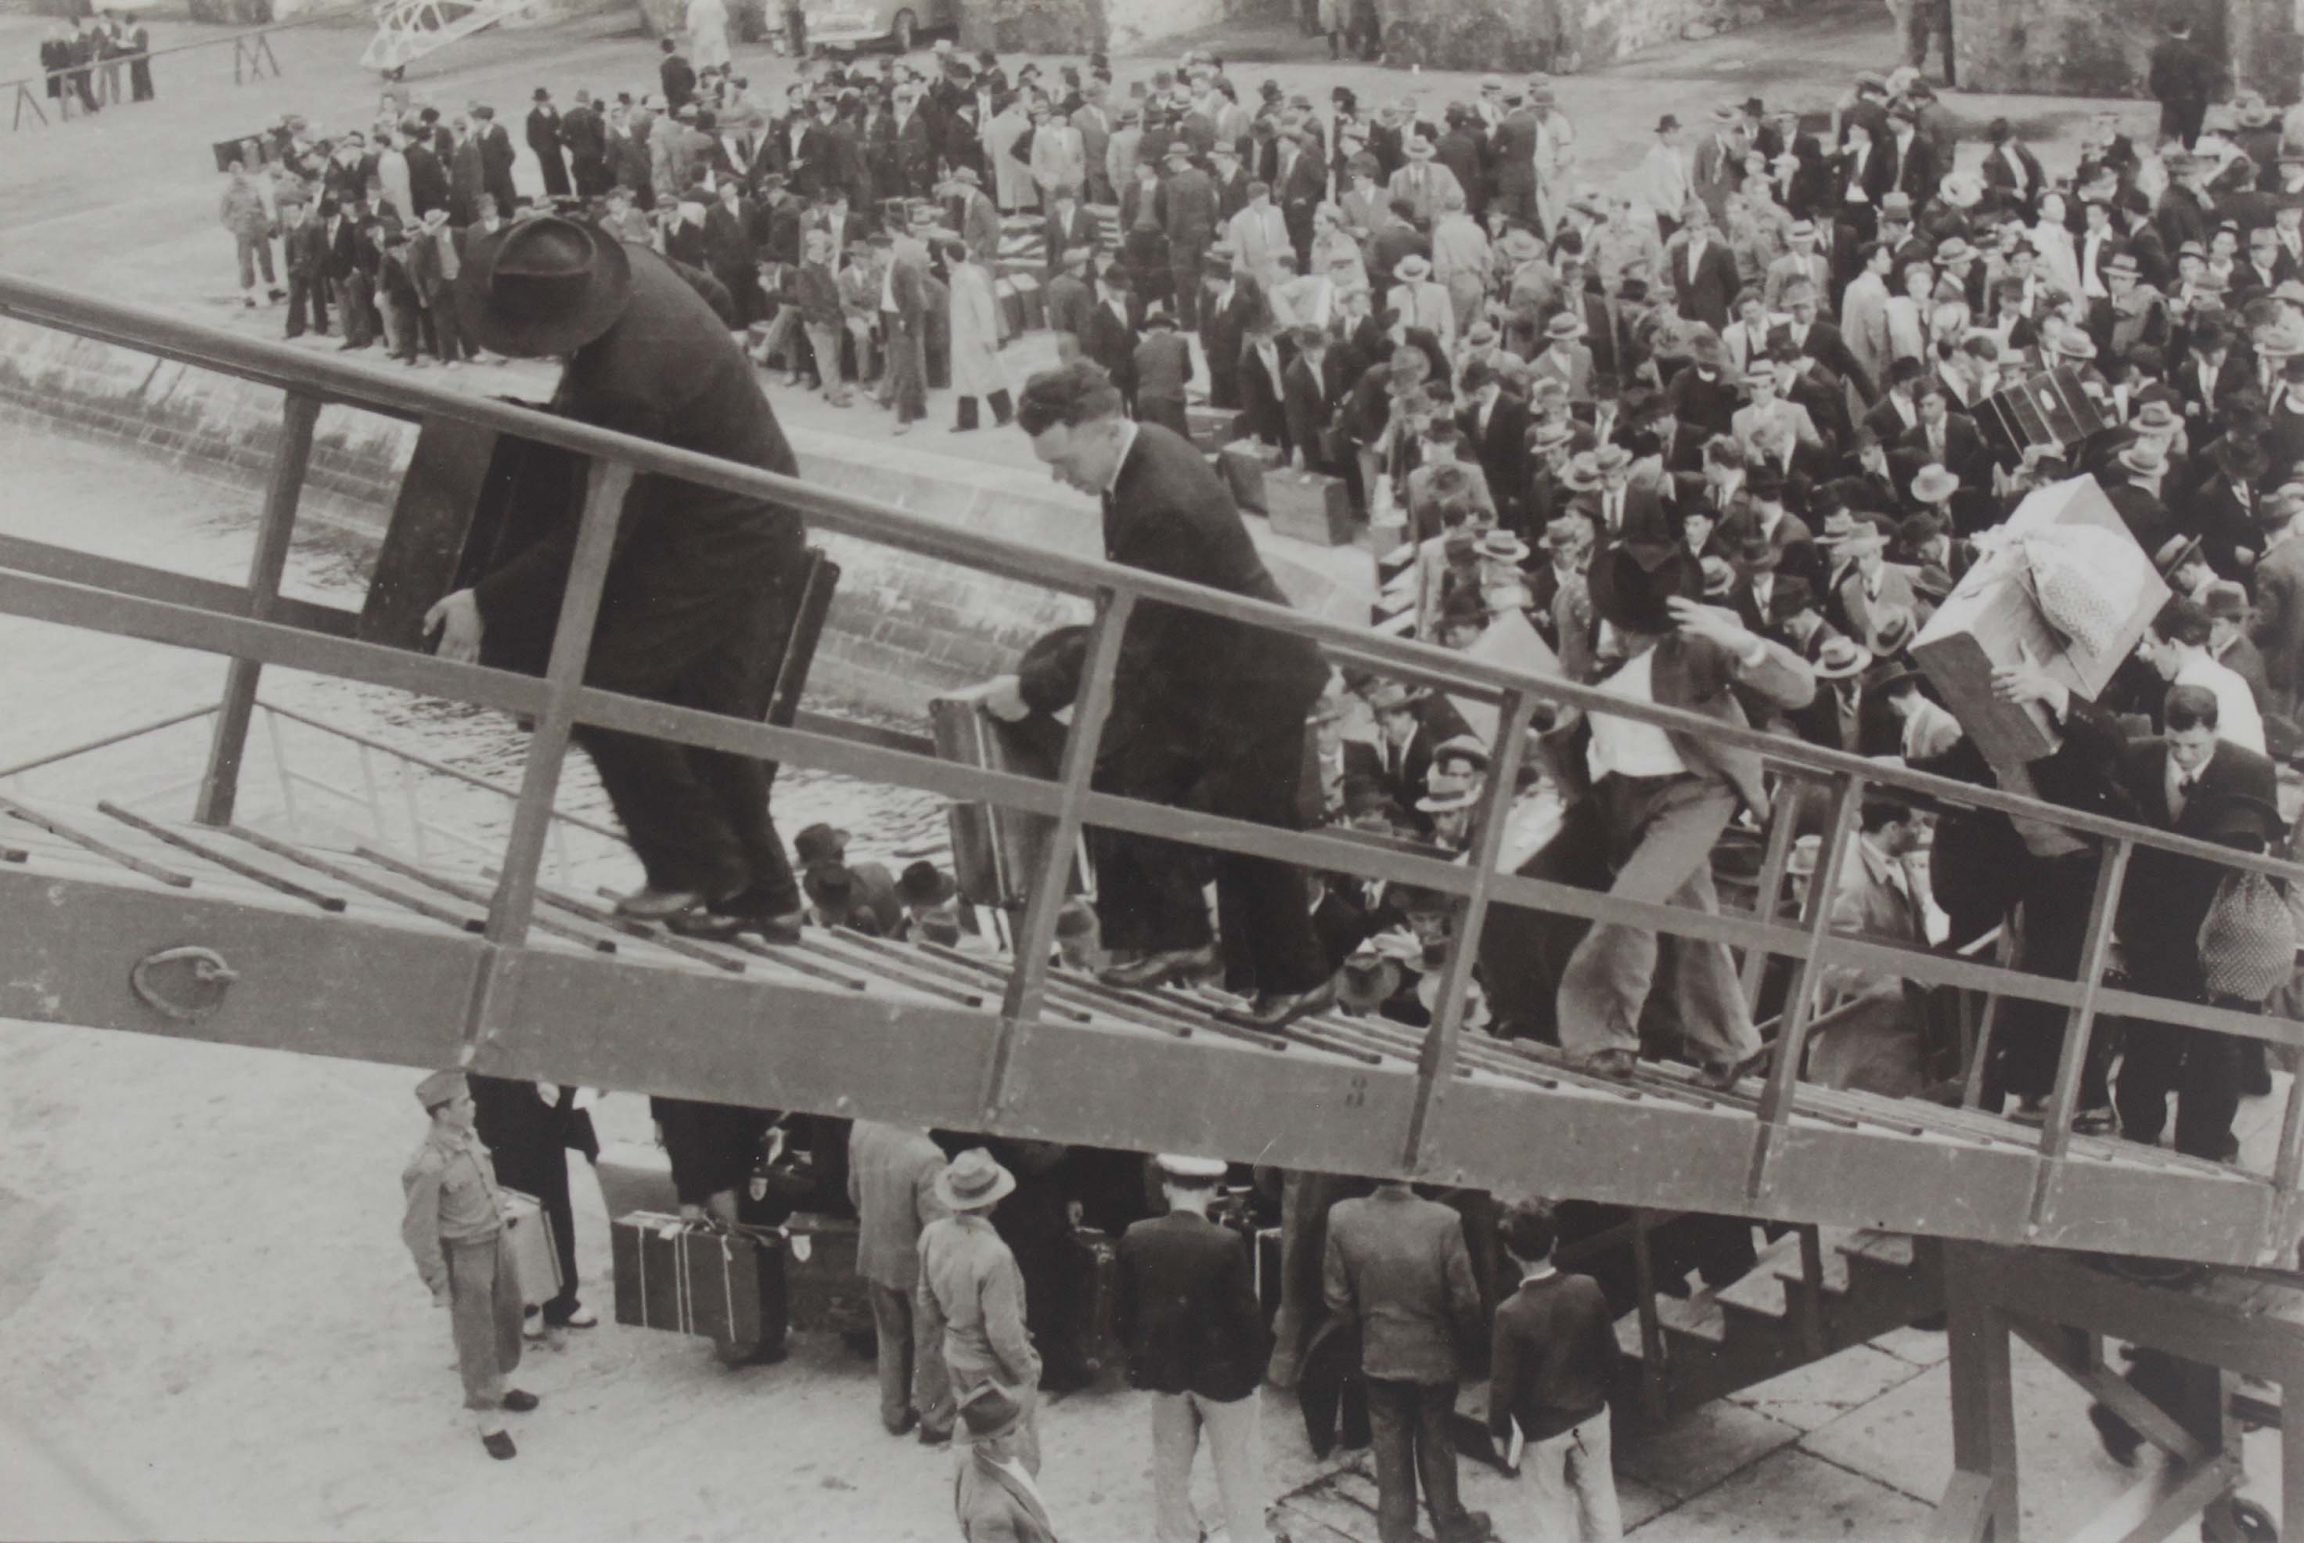 A black and white photo of men ascending to a ship, with others on the quay below